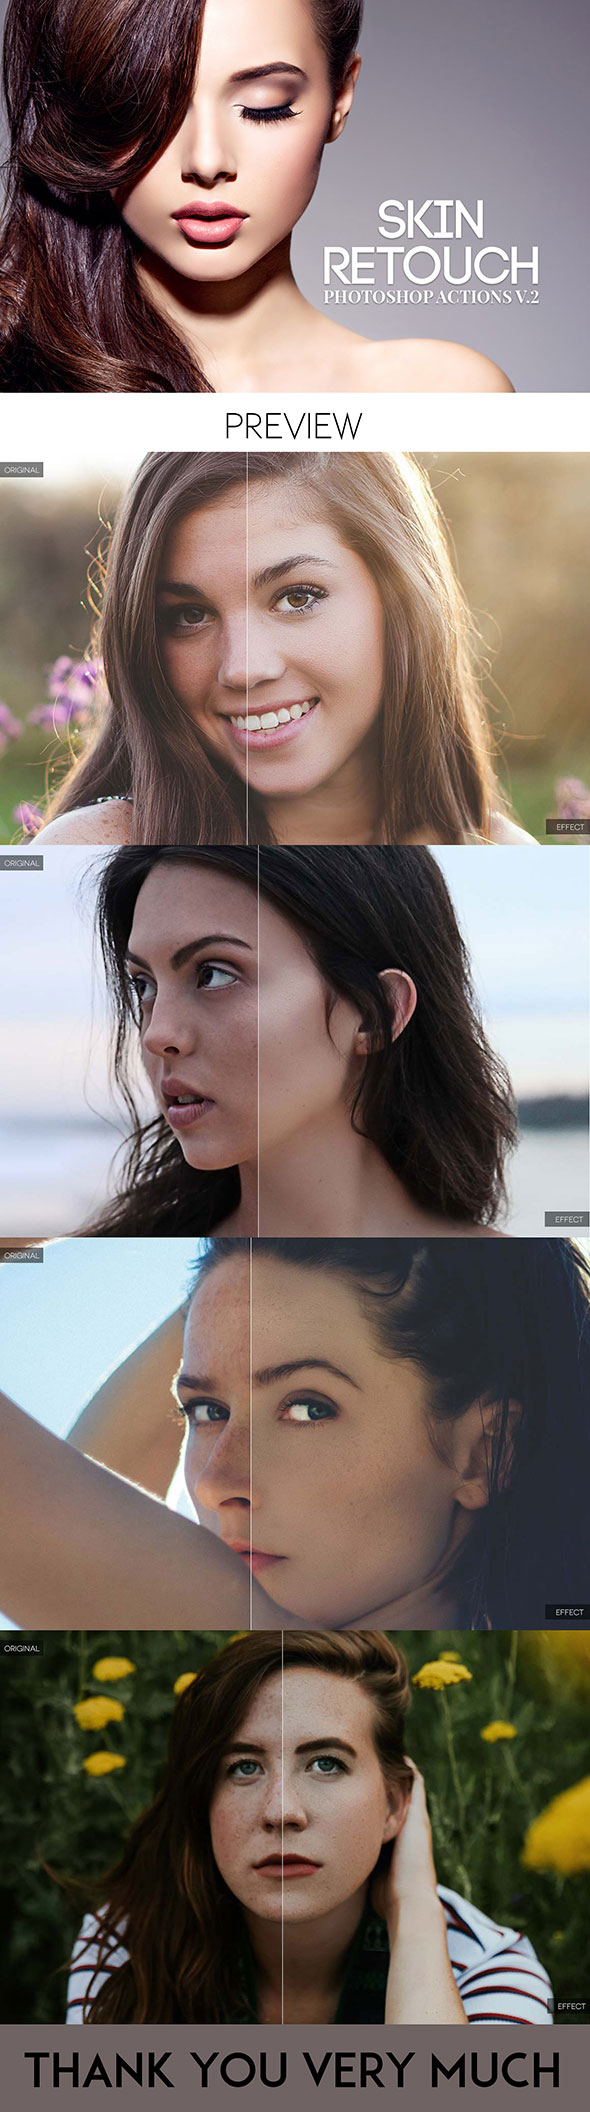 Skin Retouch Photoshop Actions Kit V.2 - Photo Effects Actions